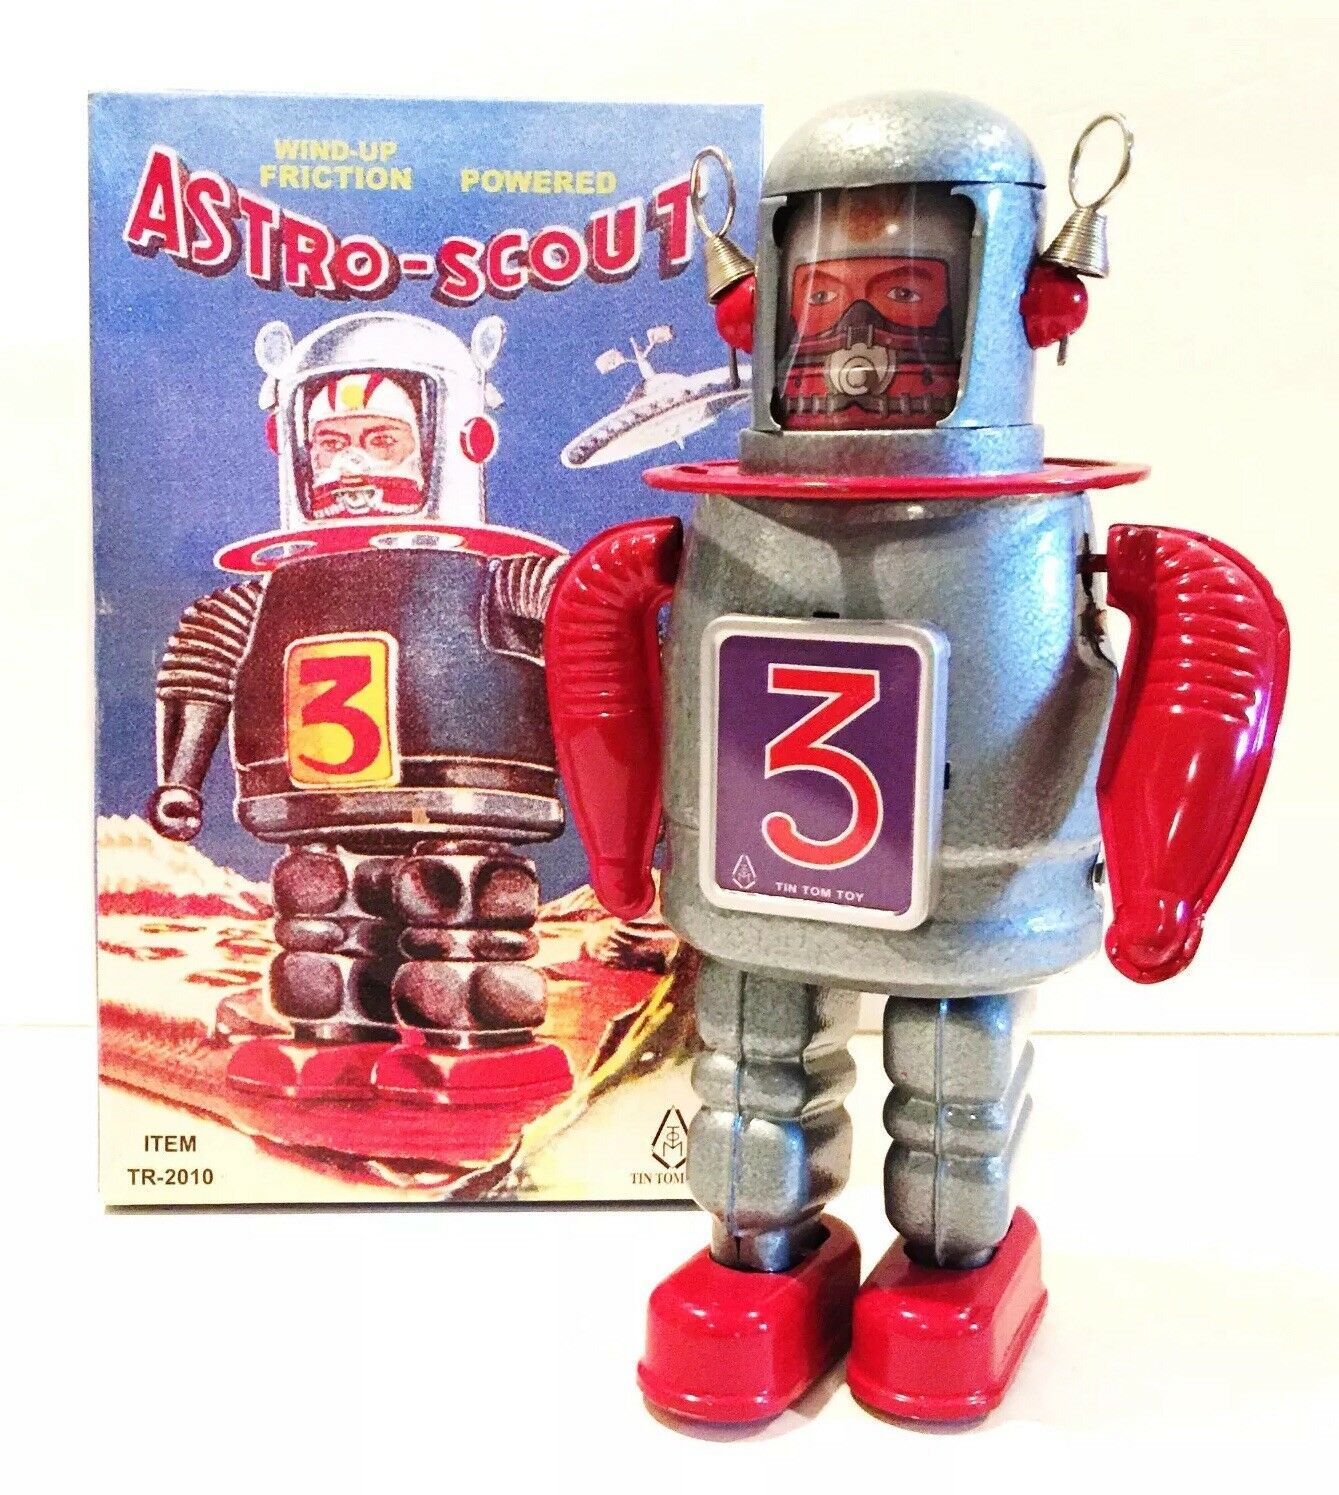 TIN TOM TOY ASTRO-SCOUT WIND UP FRICTION POWErosso TIN ROBOT ITEM TR-2010 MINT